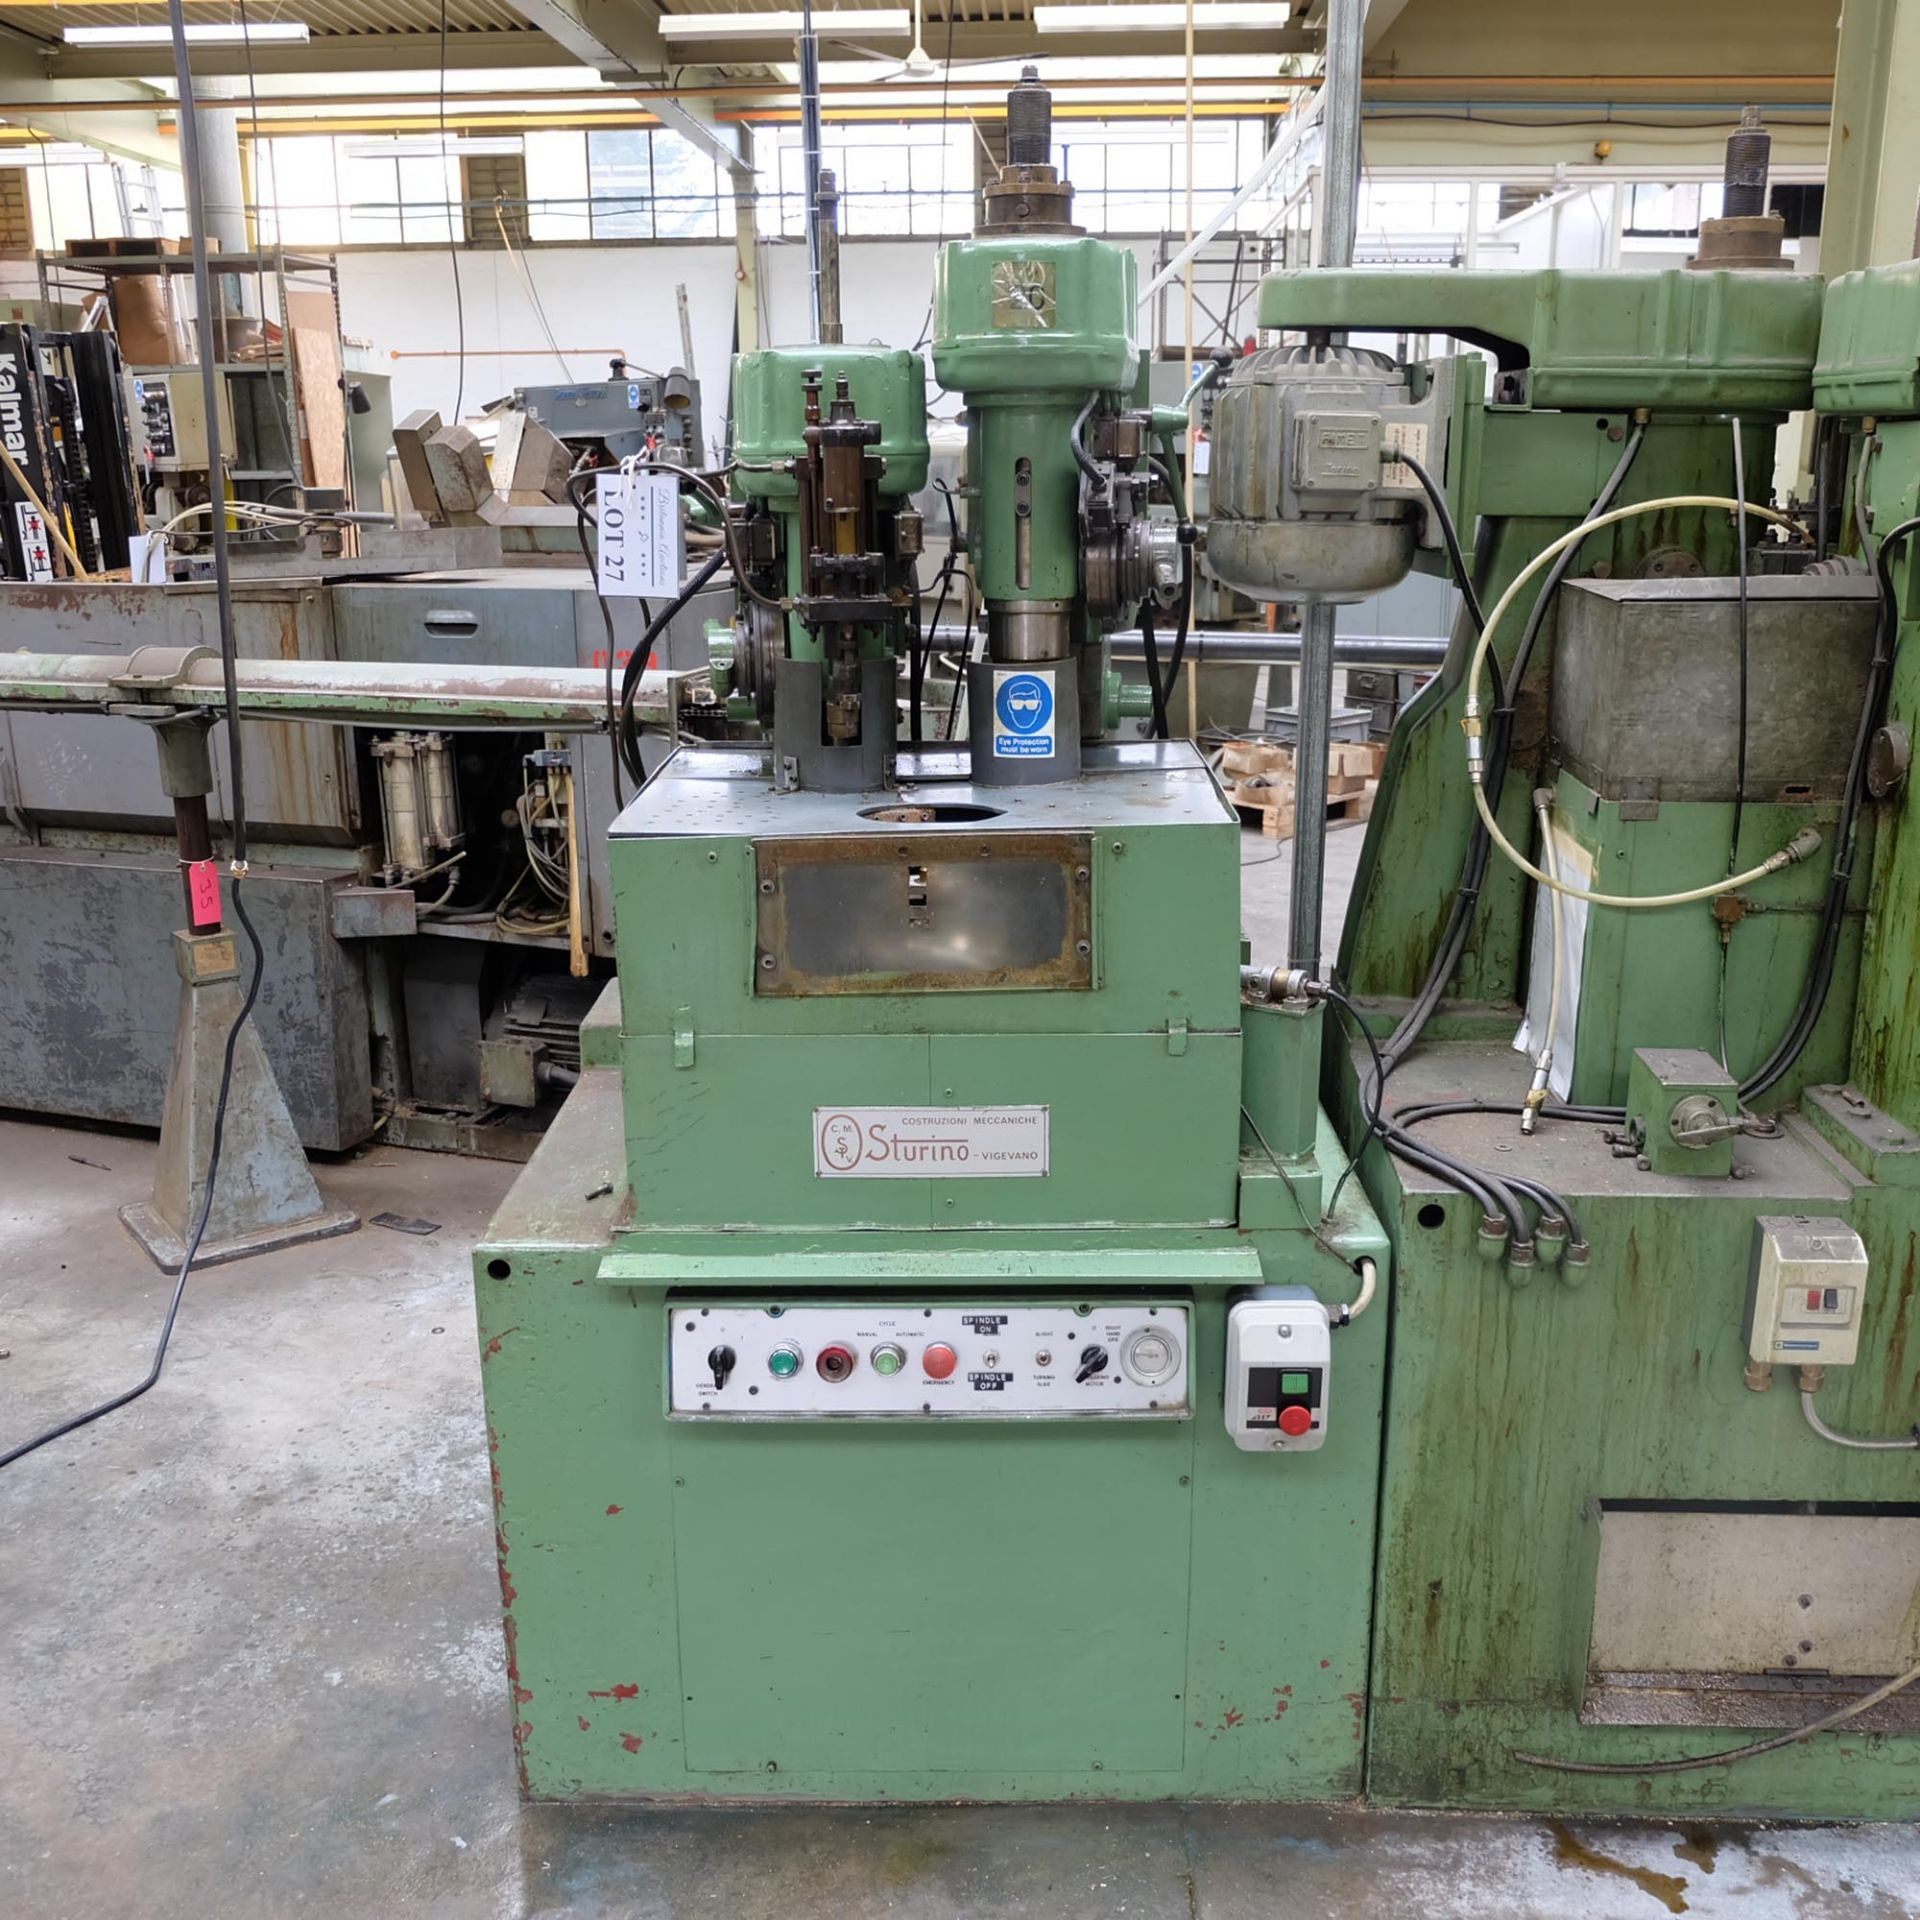 Sturino Model ST-66 Two Spindle Automatic Rotary Transfer Machine. Spindle Taper 30 Int.